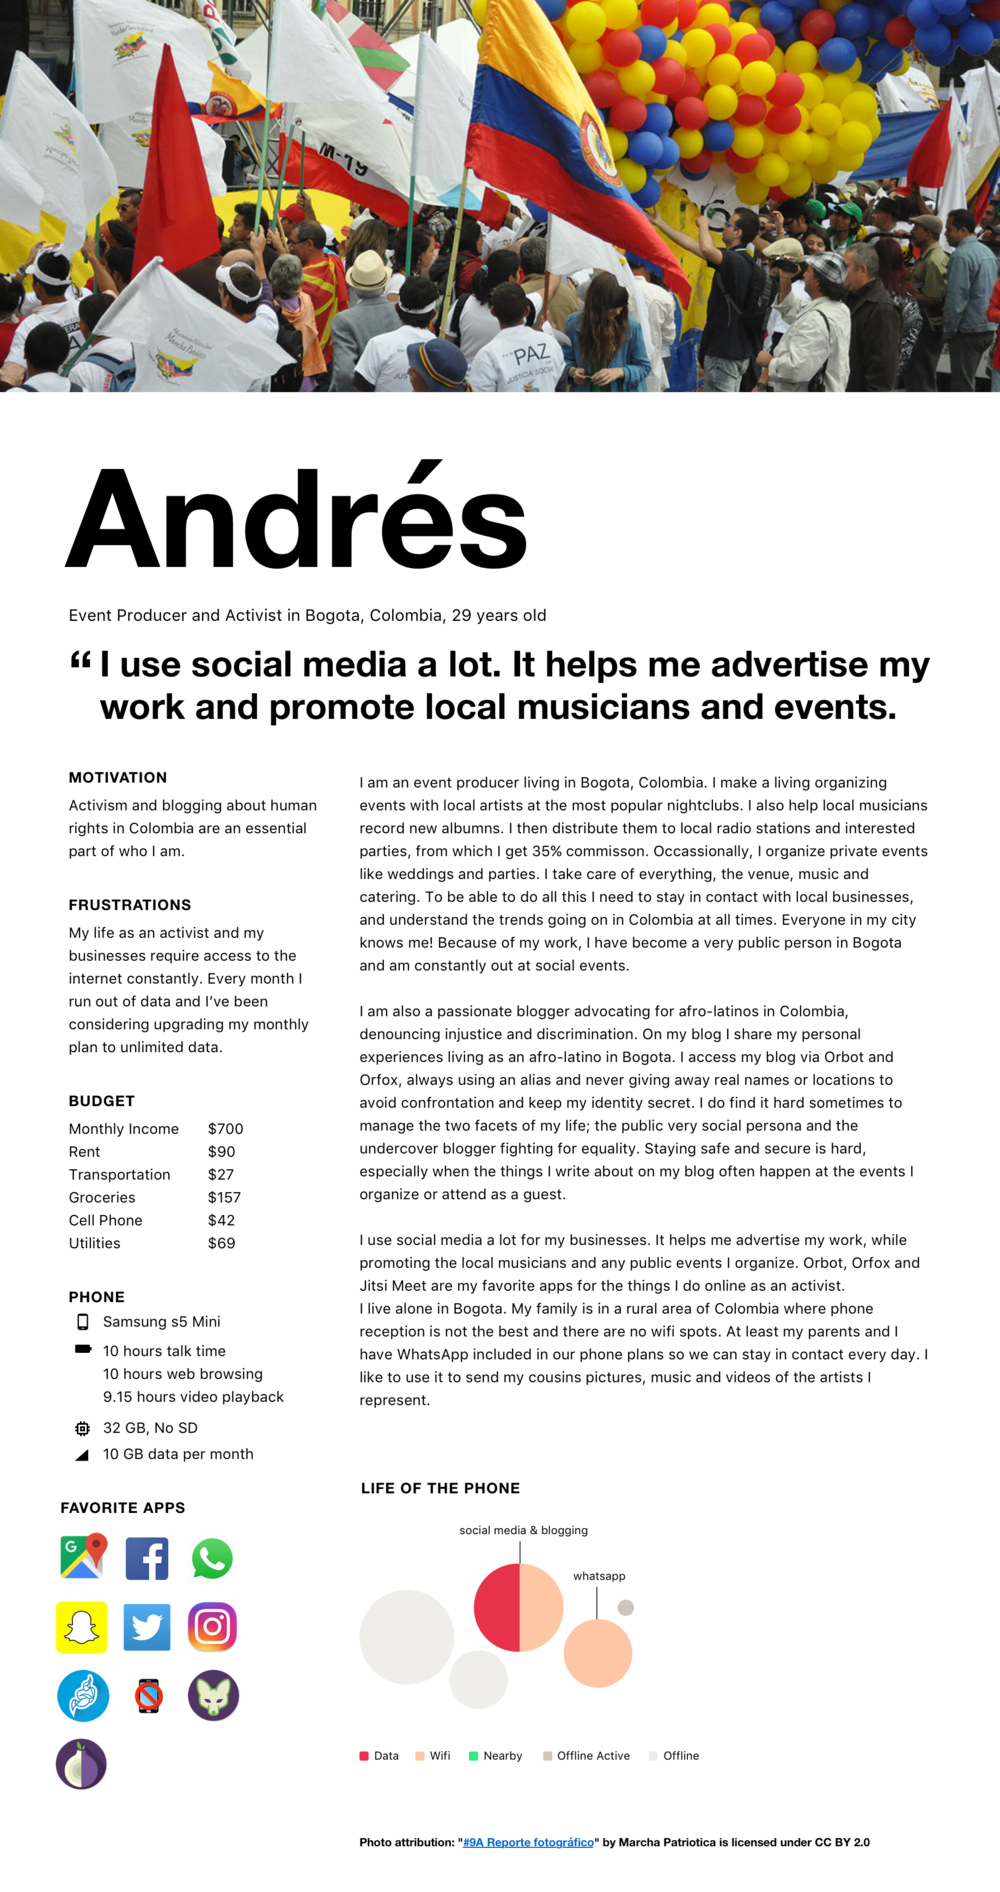 ux-persona-colombia-Andres@3x.png